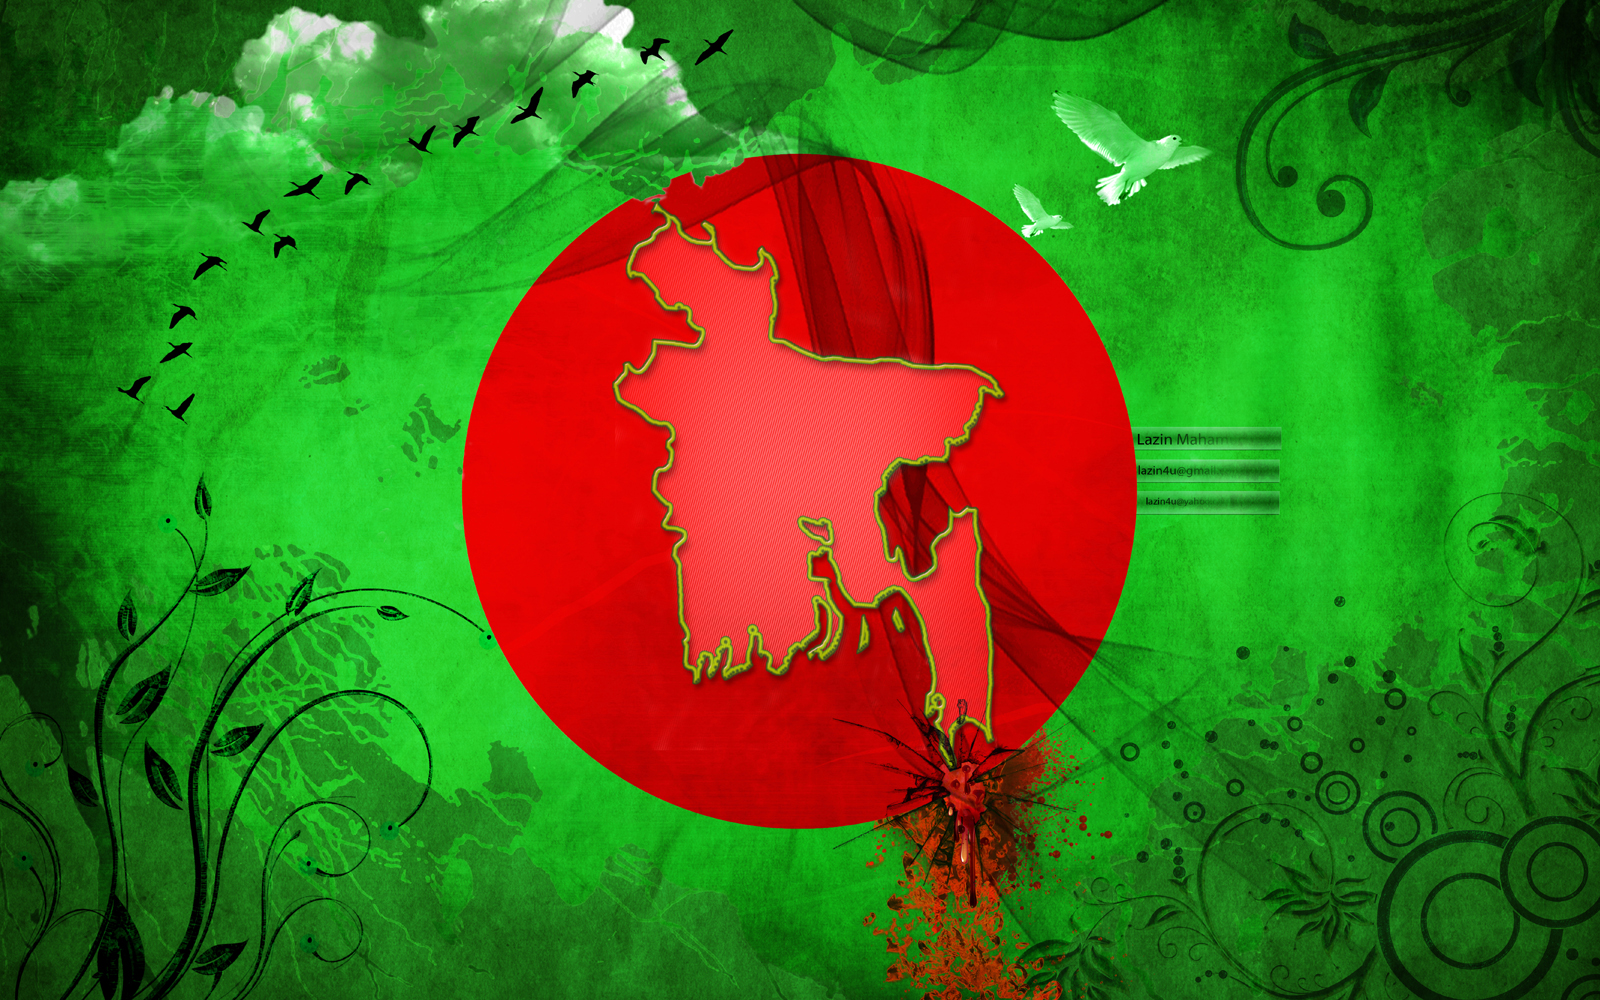 Bangladeshi Flags (Bangladesh) from The World Flag Database